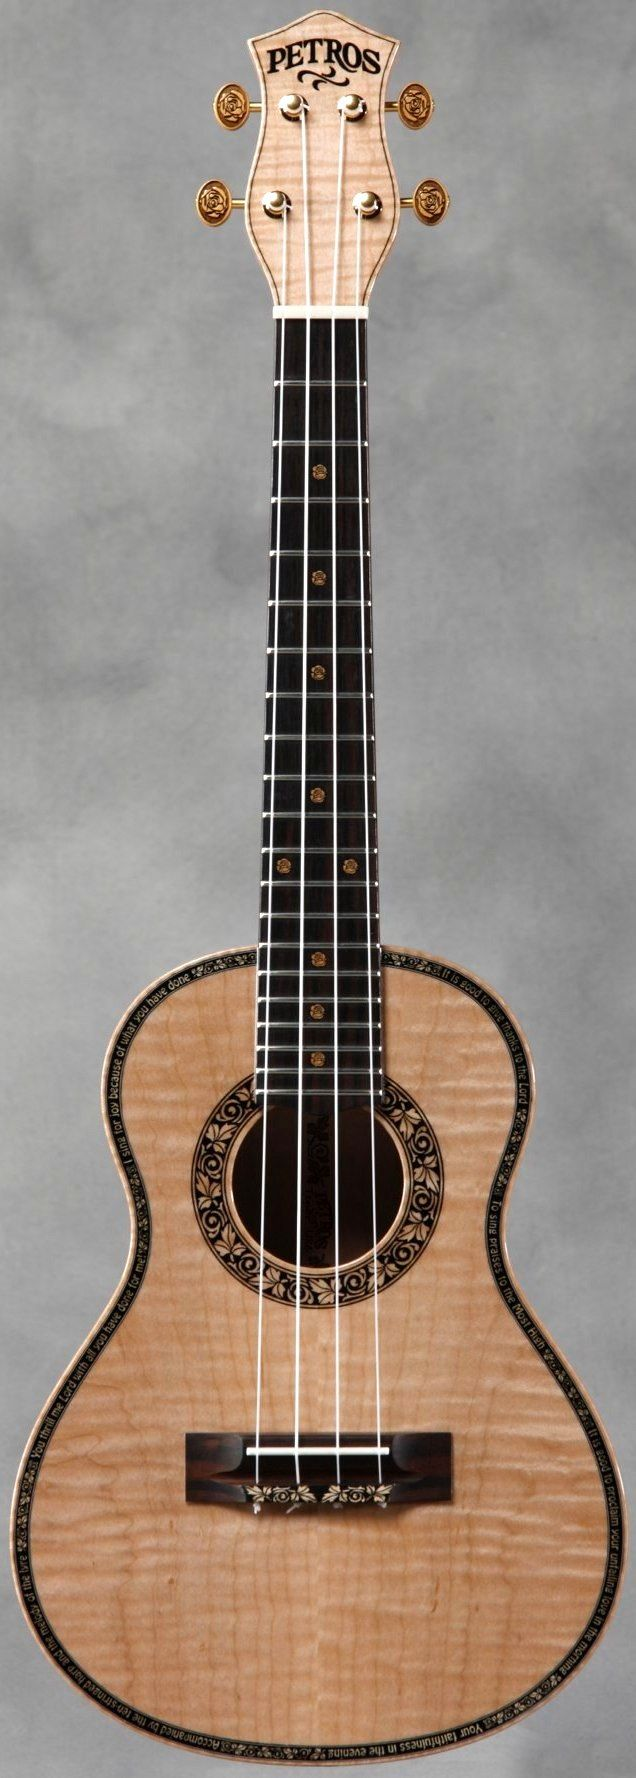 Petros Guitars #LardysWishlists #Tenor #Ukulele ~ https://www.pinterest.com/lardyfatboy/ ~